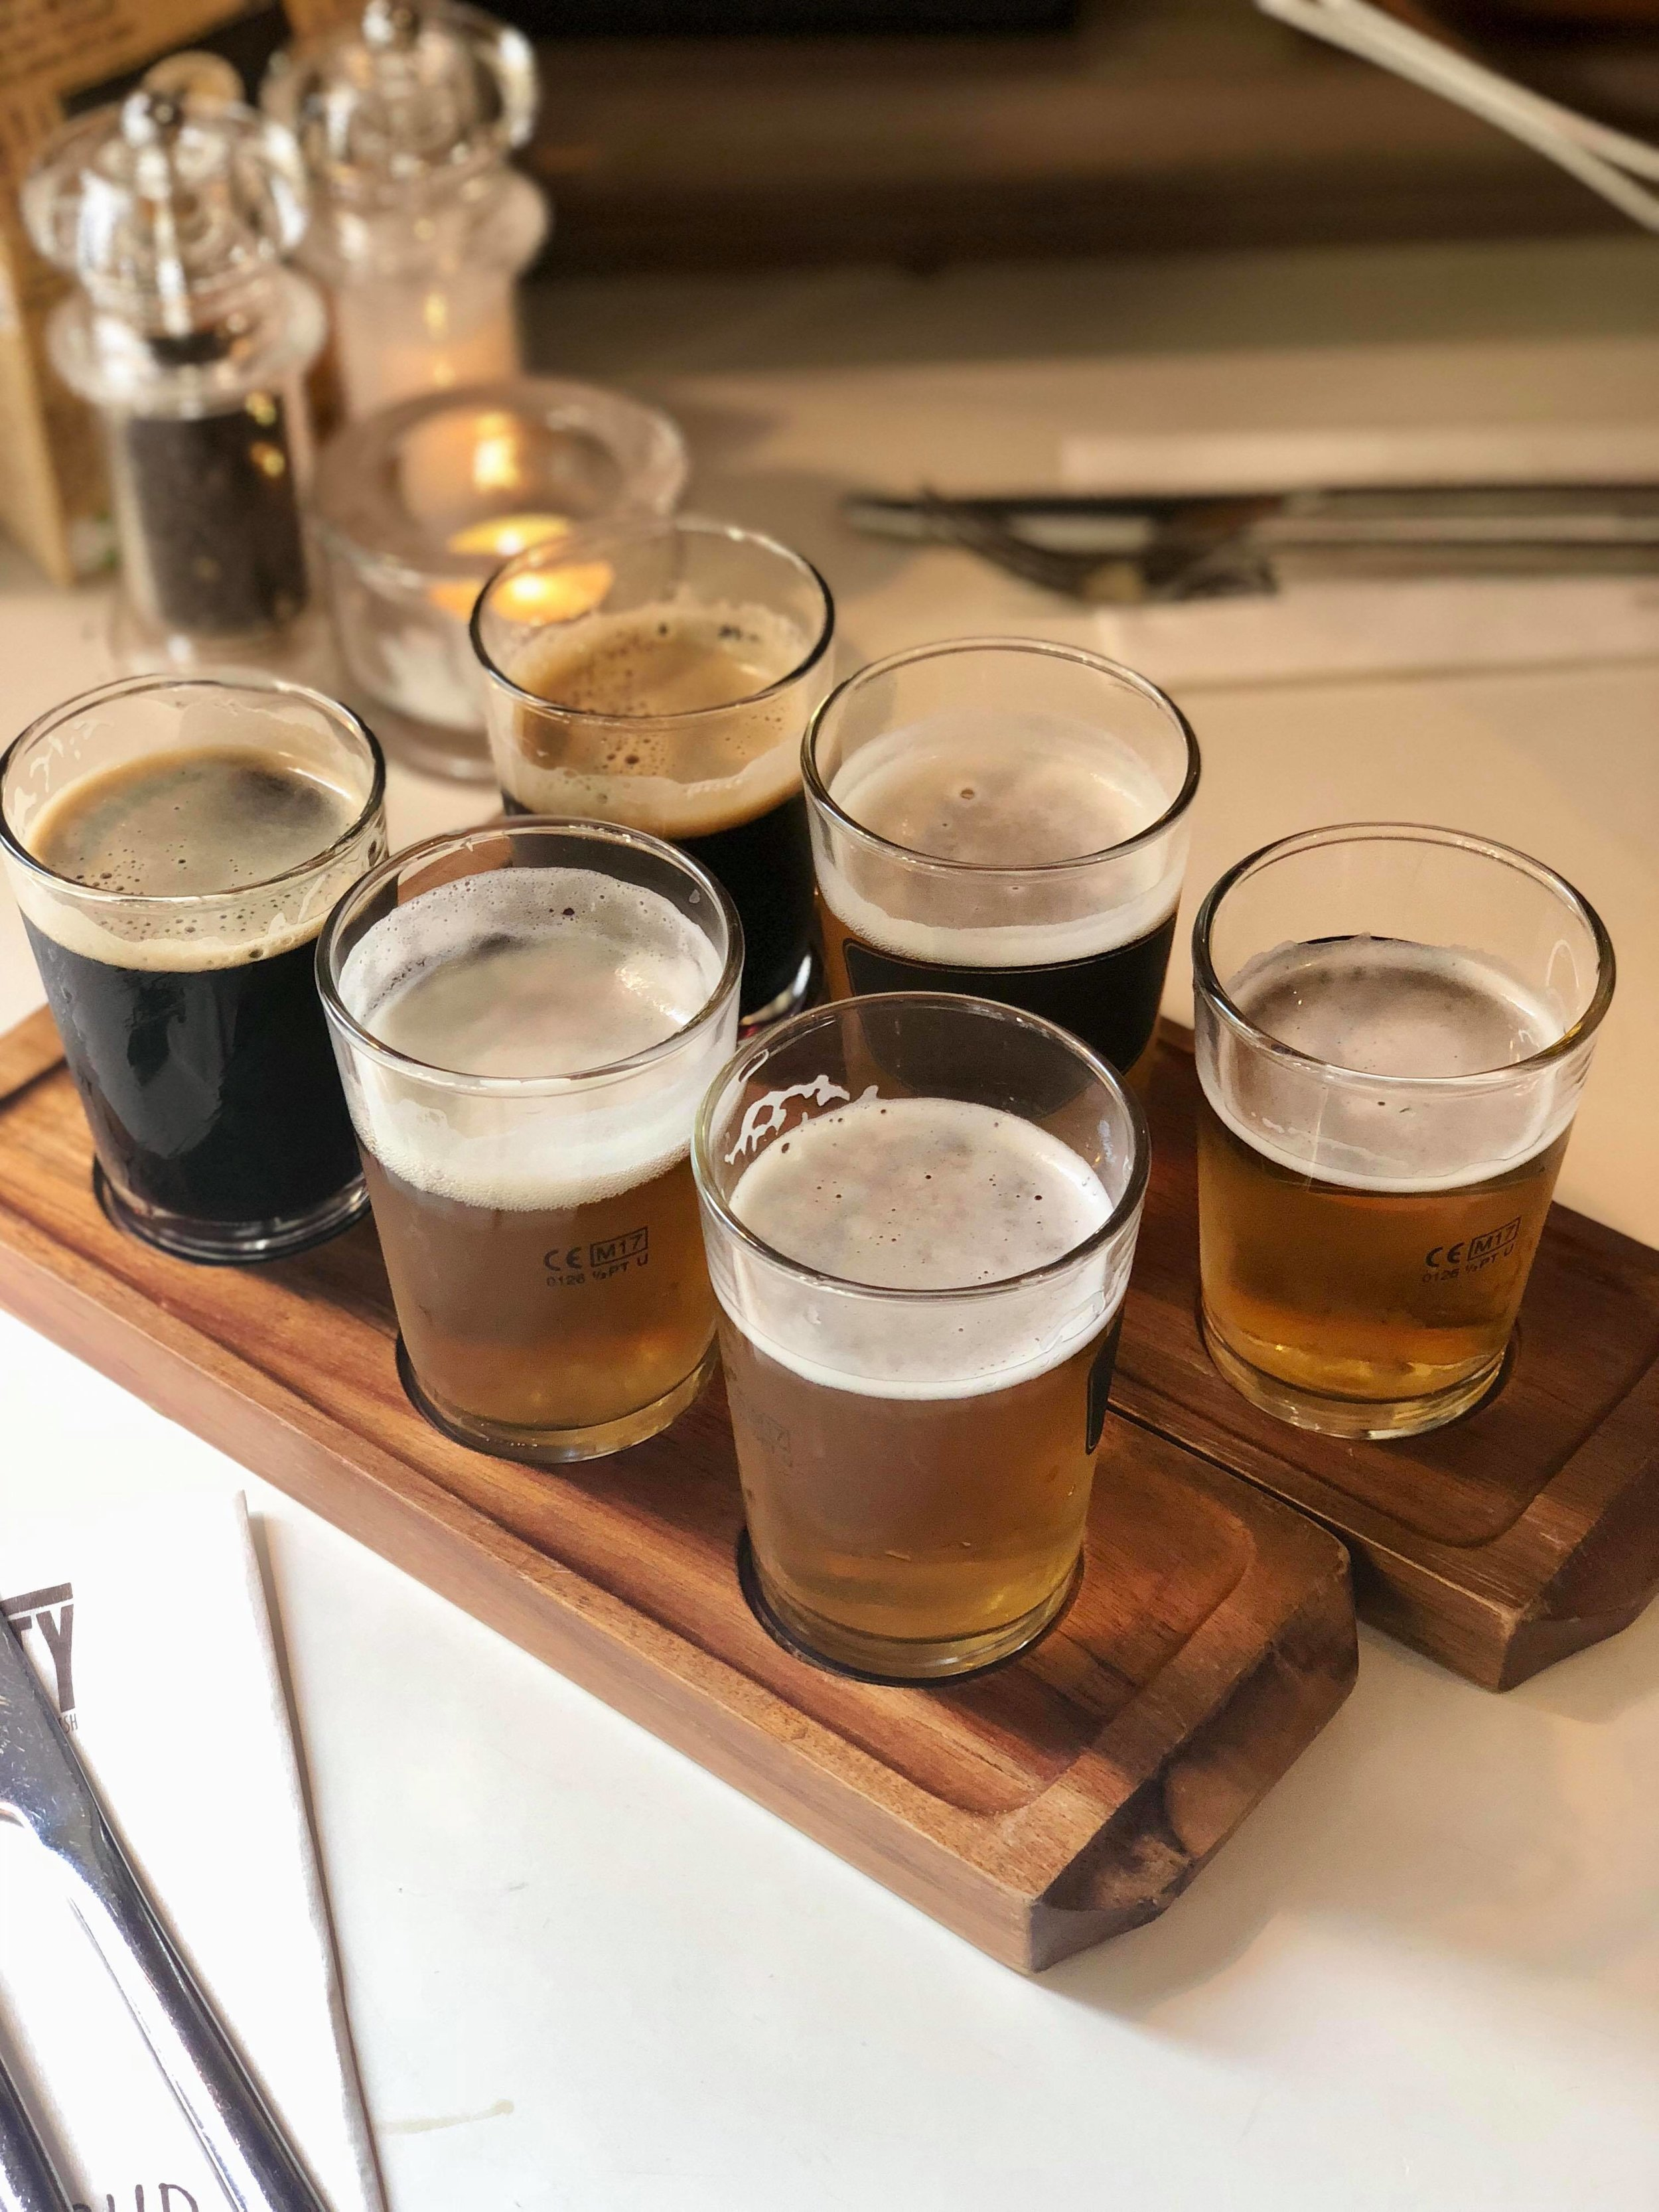 - A sample of their own in-house craft beer selection